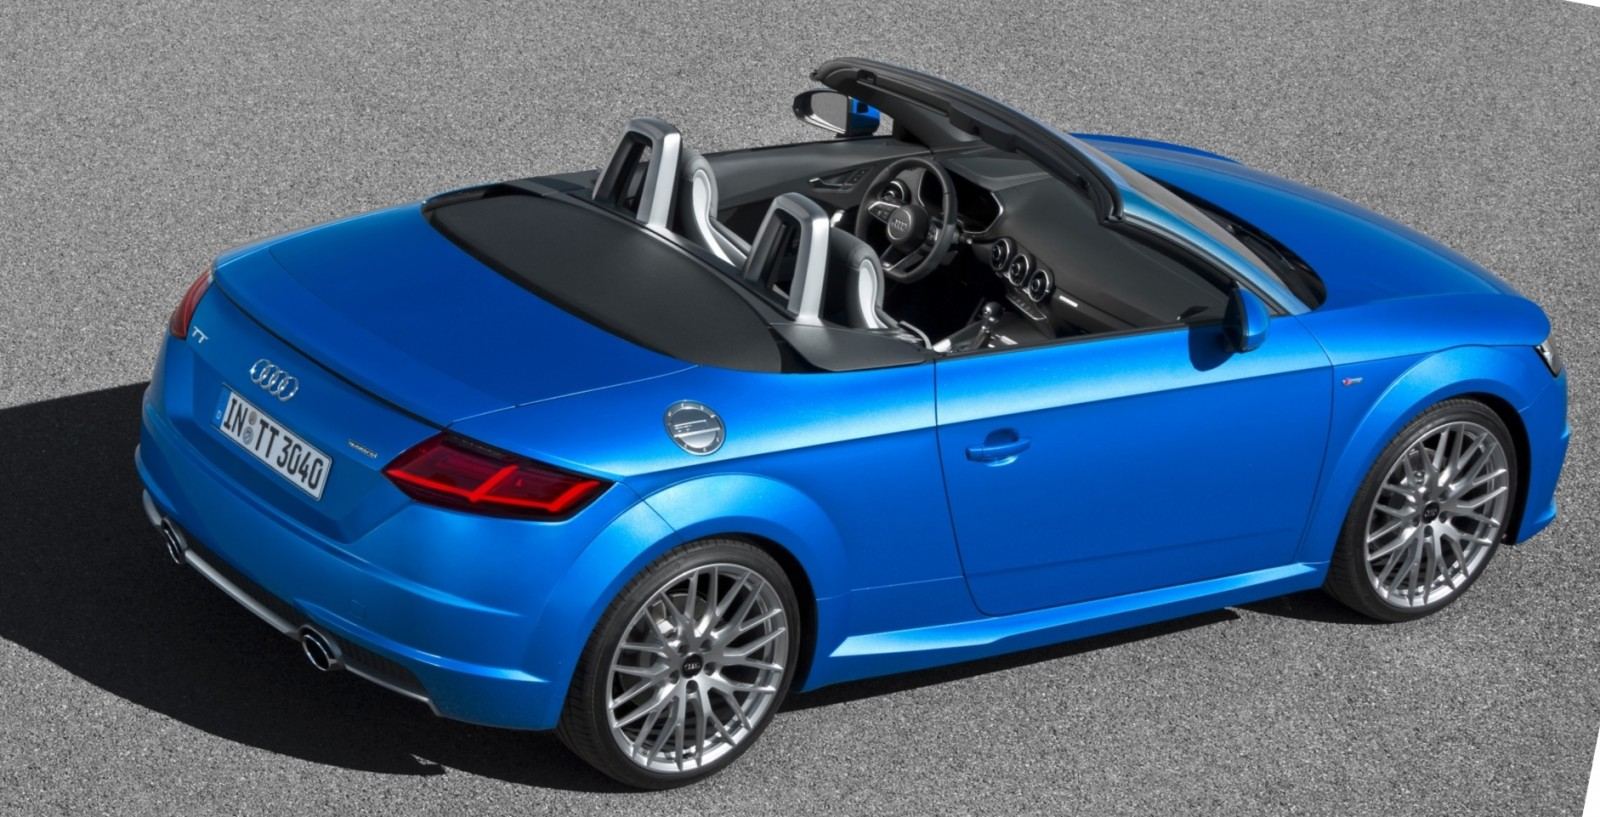 2015 Audi TT and TTS Roadster Revealed Before Paris Show 7